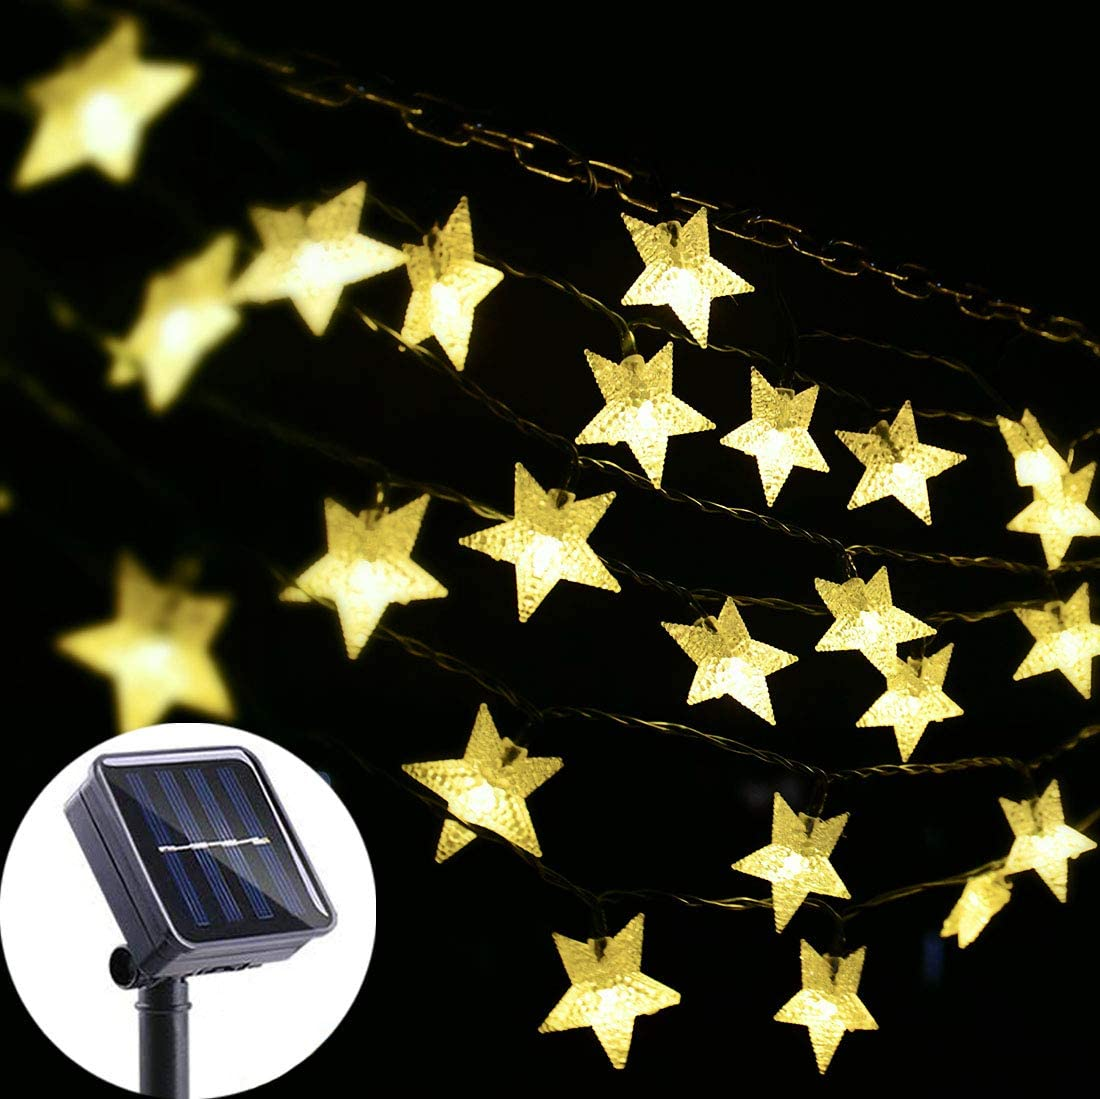 Viewpick Solar Star String Lights Outdoor Solar Powered String Lights, 30ft 50 LED Twinkling Fairy Lights for Garden, Outdoor, Lawn Patio, Landscape, Xmas, Holiday Decorations (Warm White)